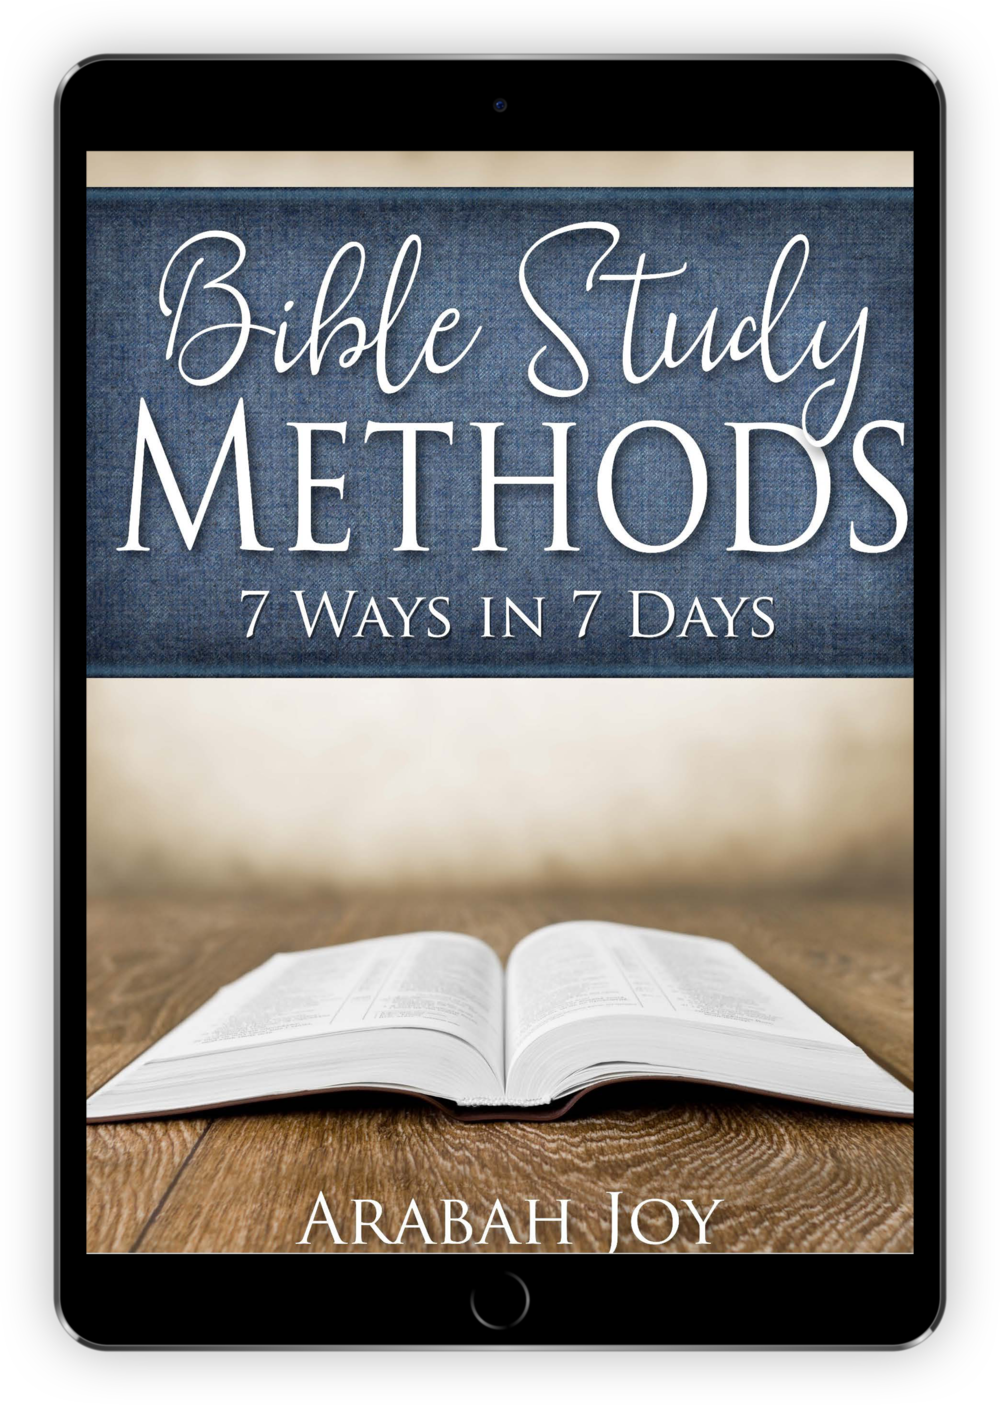 BibleStudyMethods Mockups - Copy.png